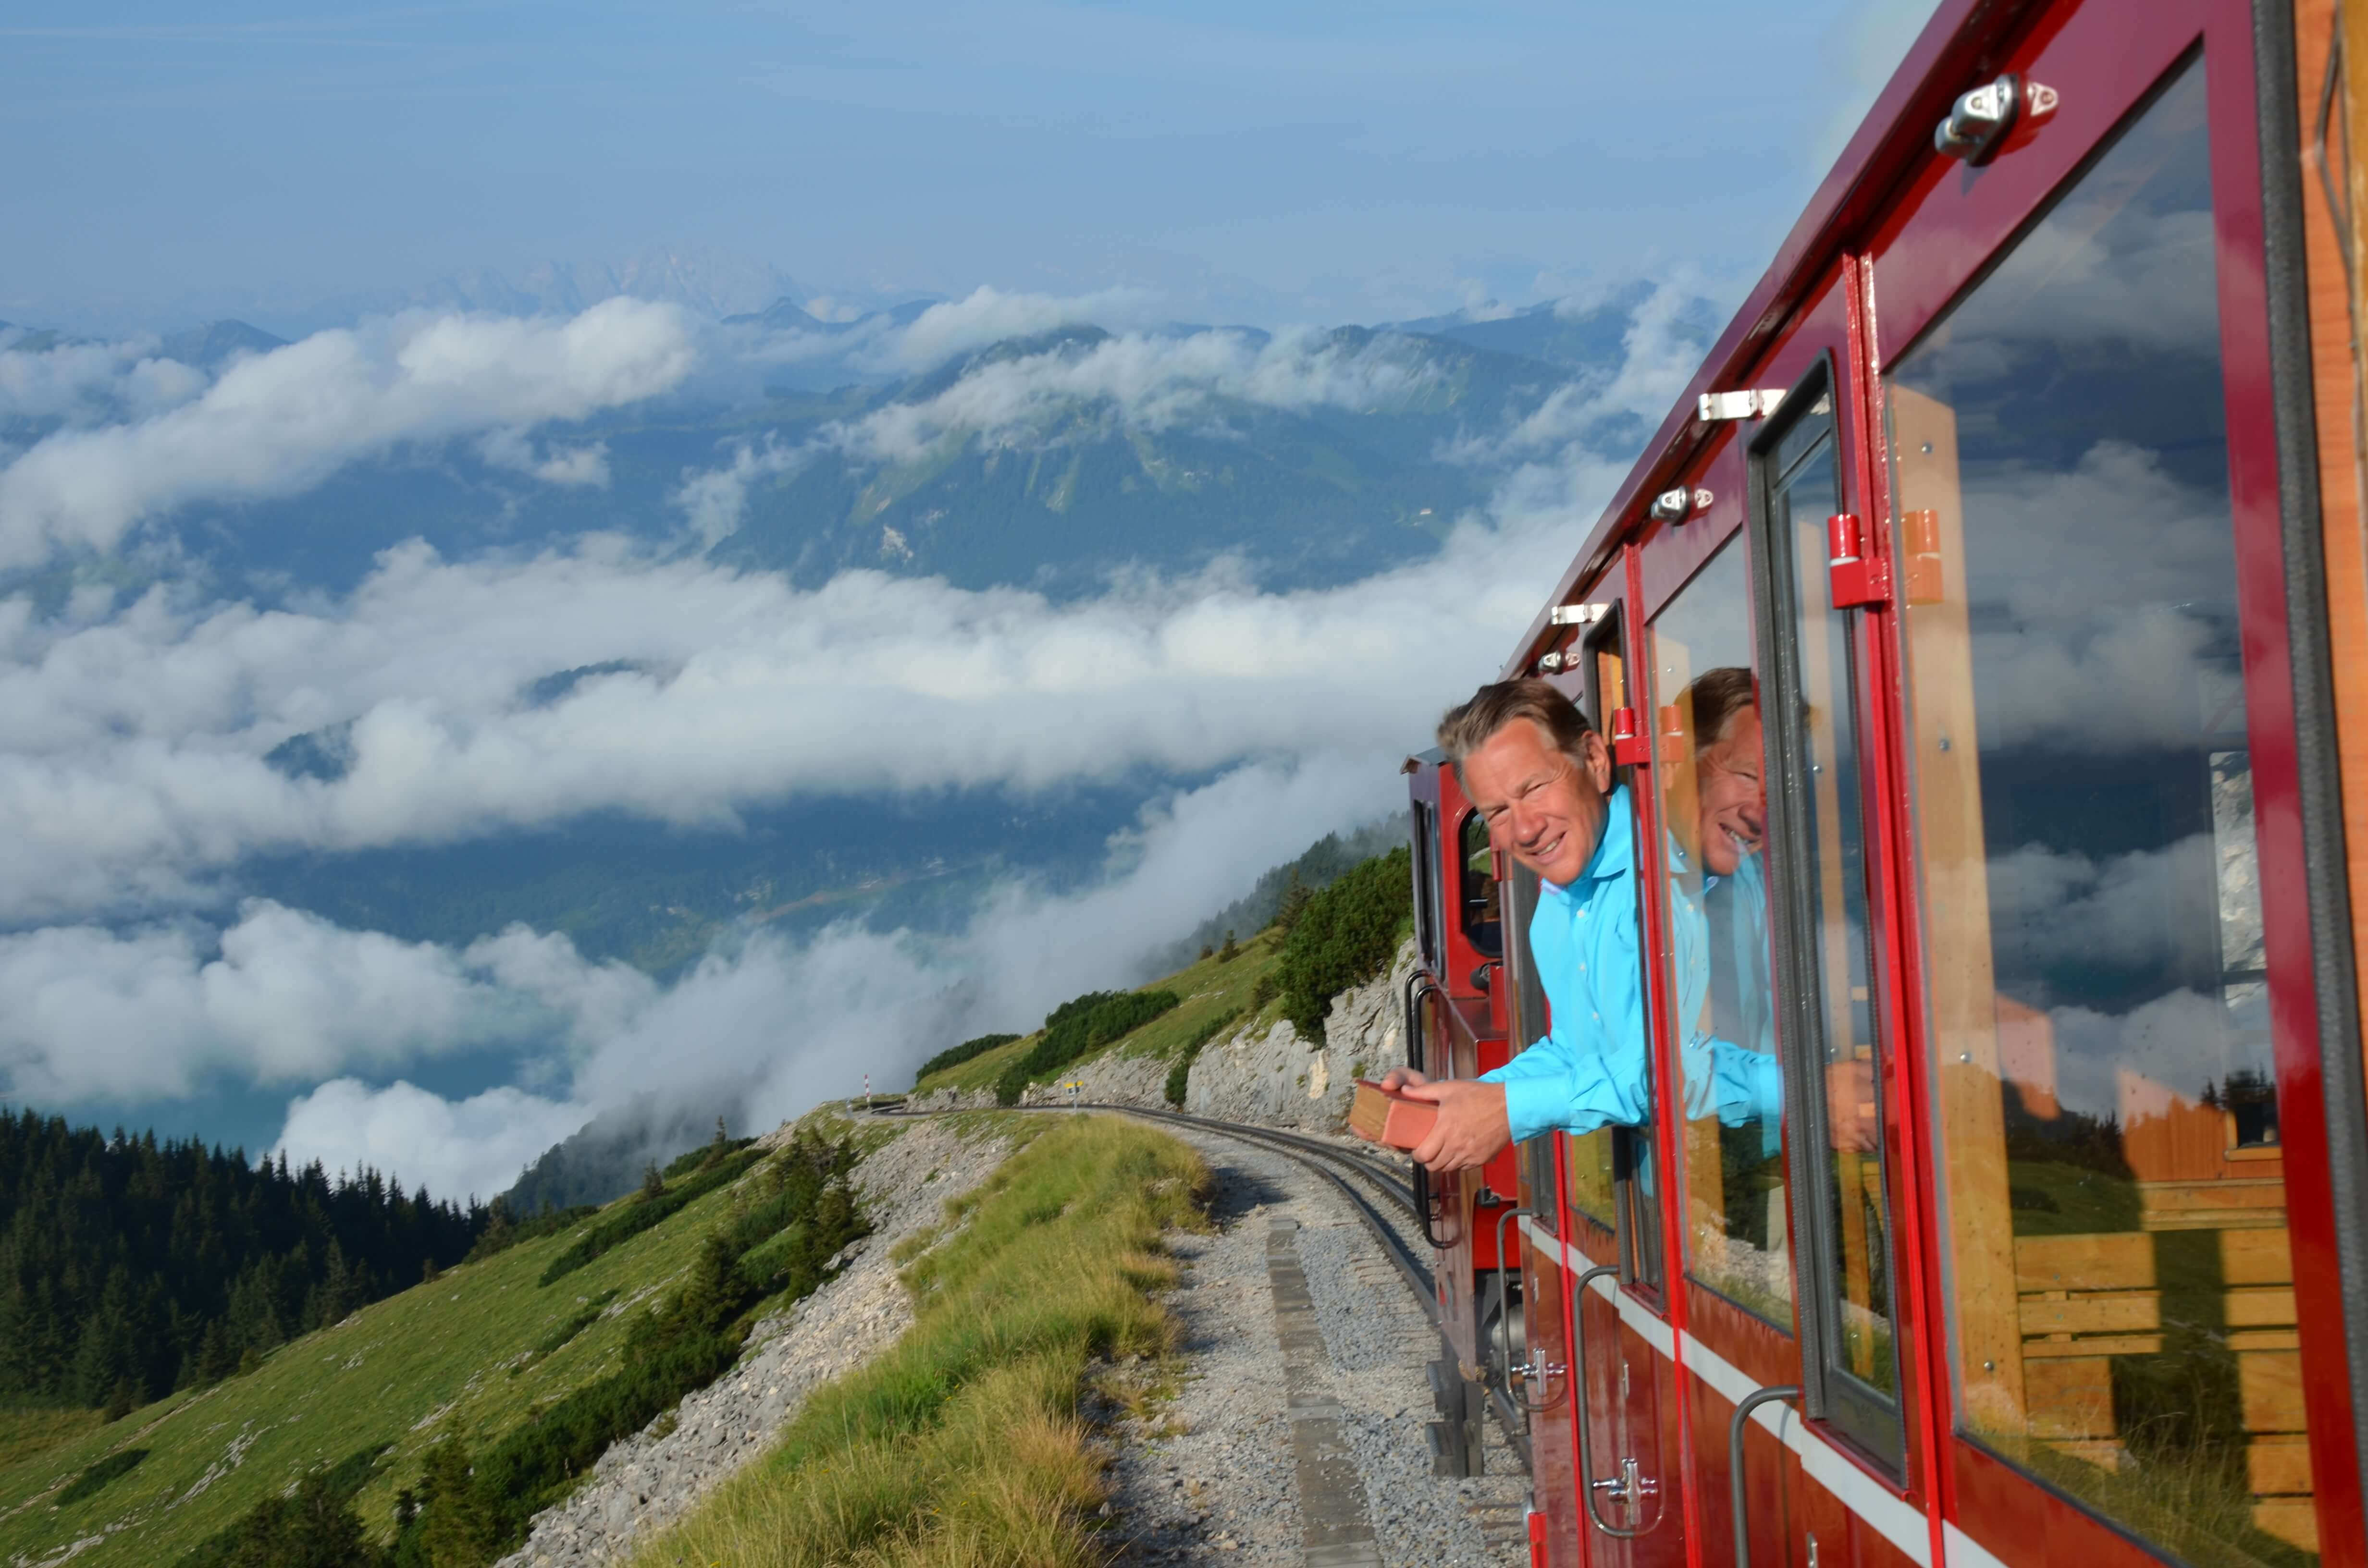 michael portillo leading out of train with mountains in background